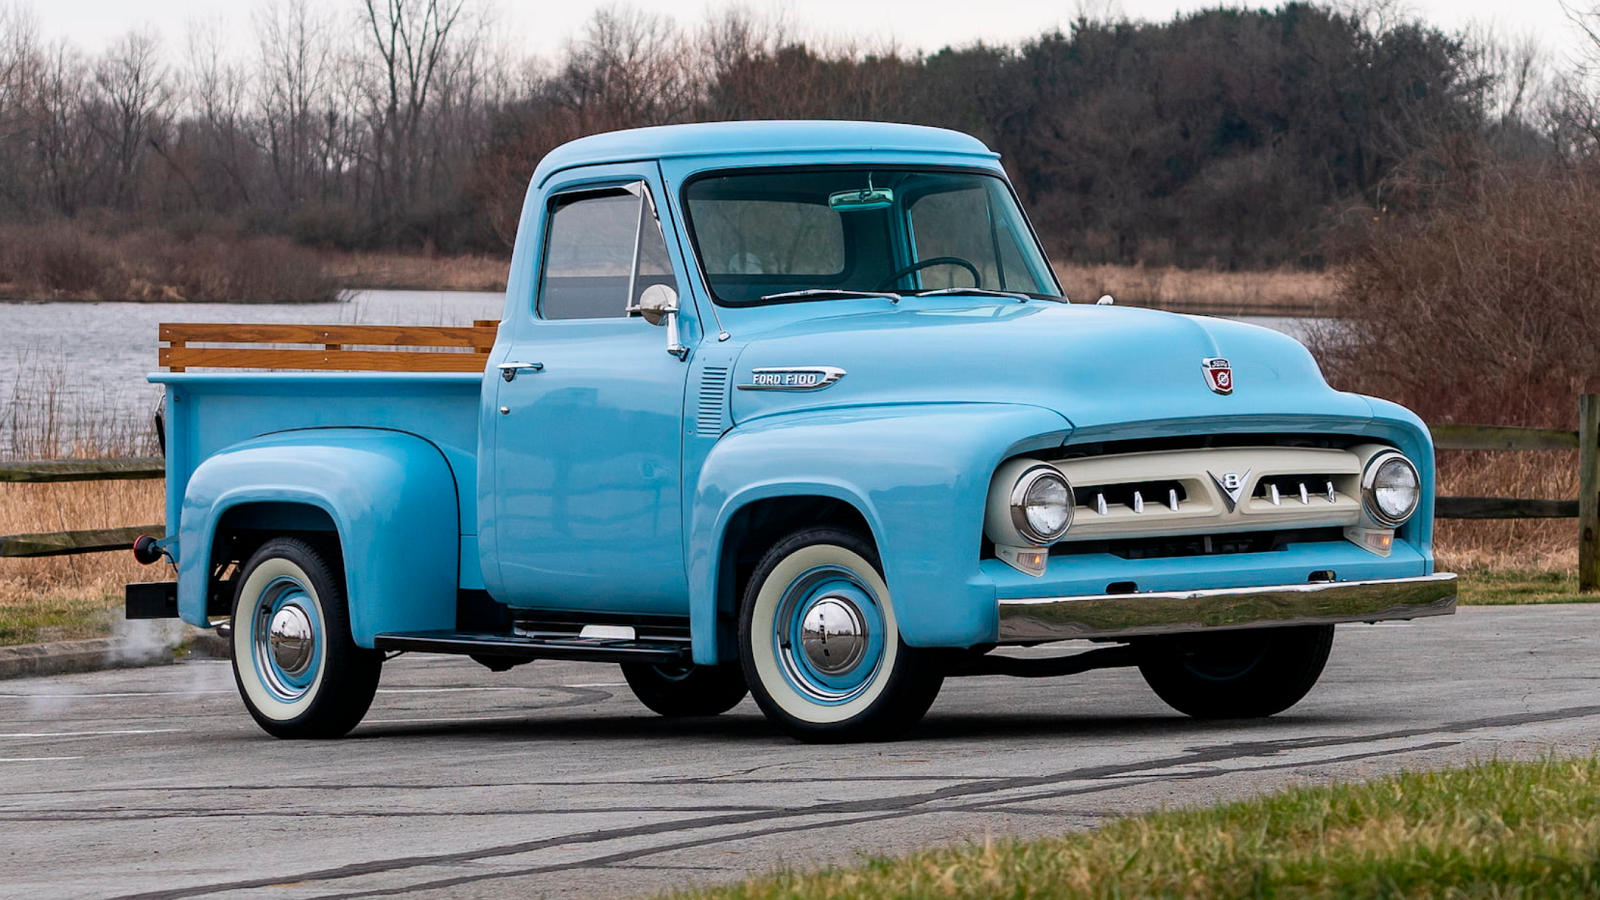 Glacier Blue 1953 Ford F-100 Should Never Be Put out to Pasture